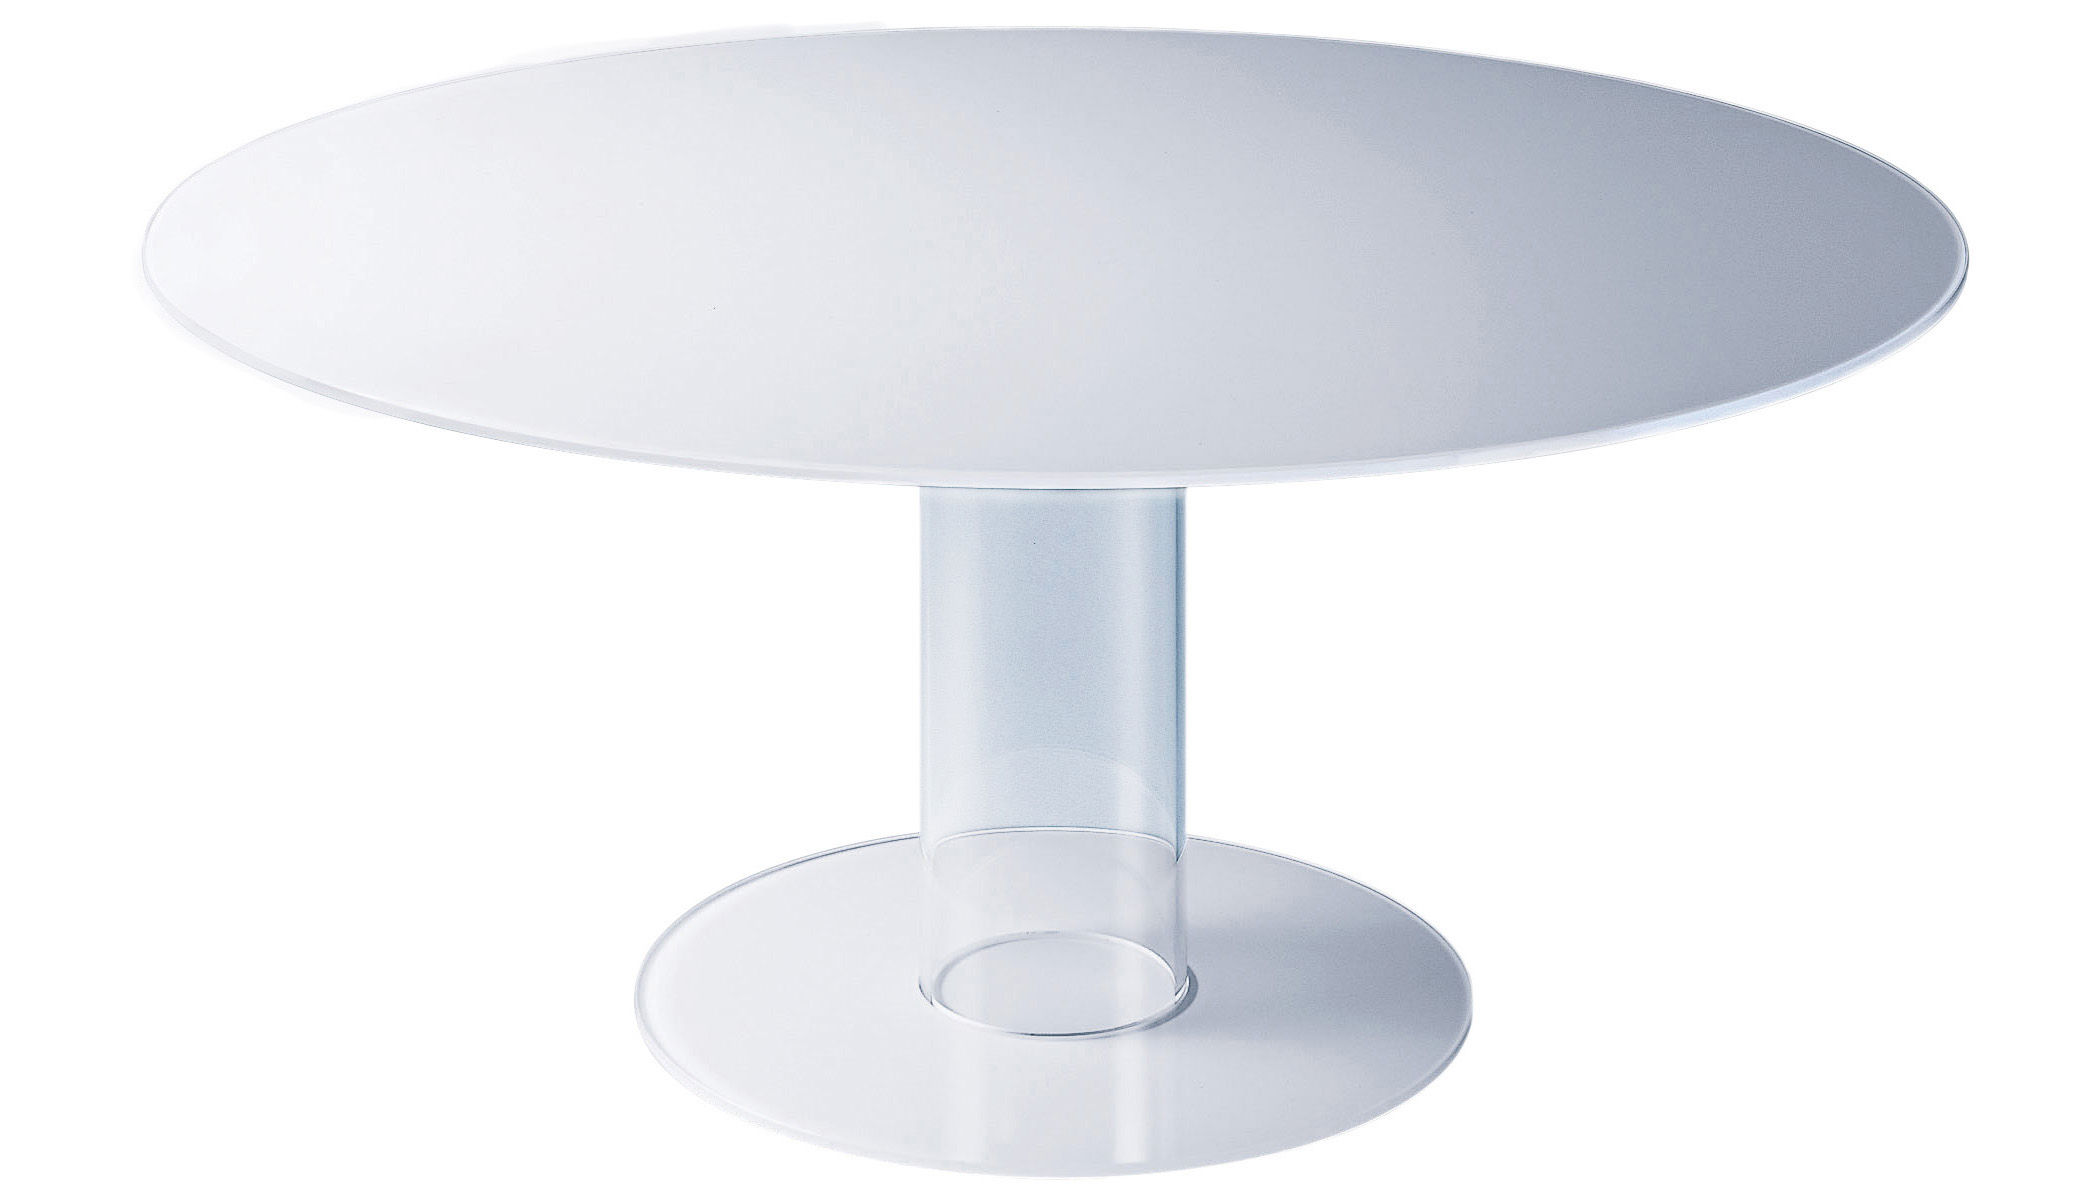 Furniture - Dining Tables - Hub Round table - Ø 140 cm by Glas Italia - White - Glass